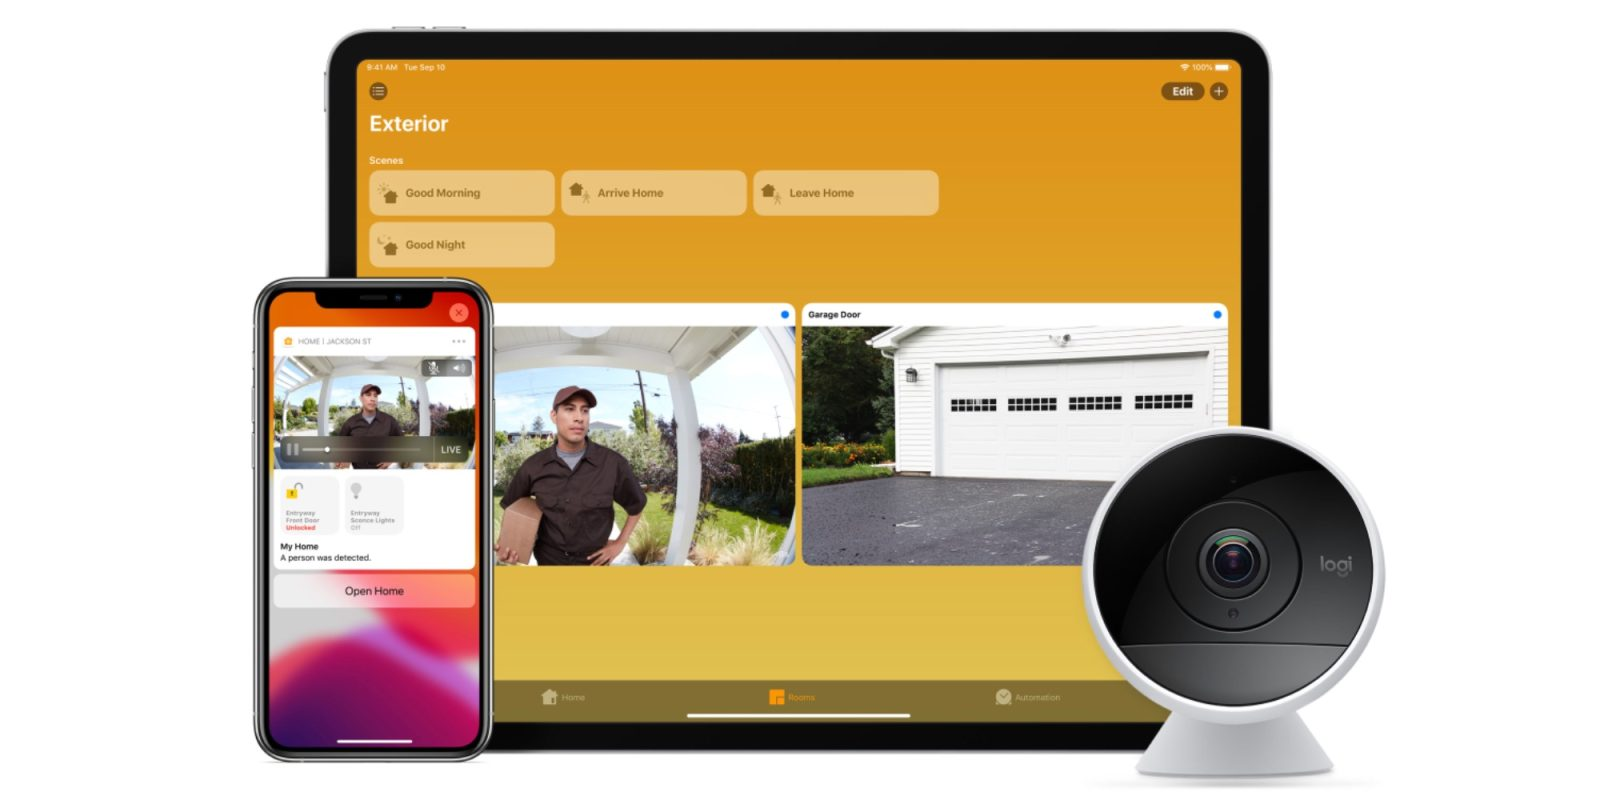 HomeKit Secure Video is a privacy win, but expect some missing features for now